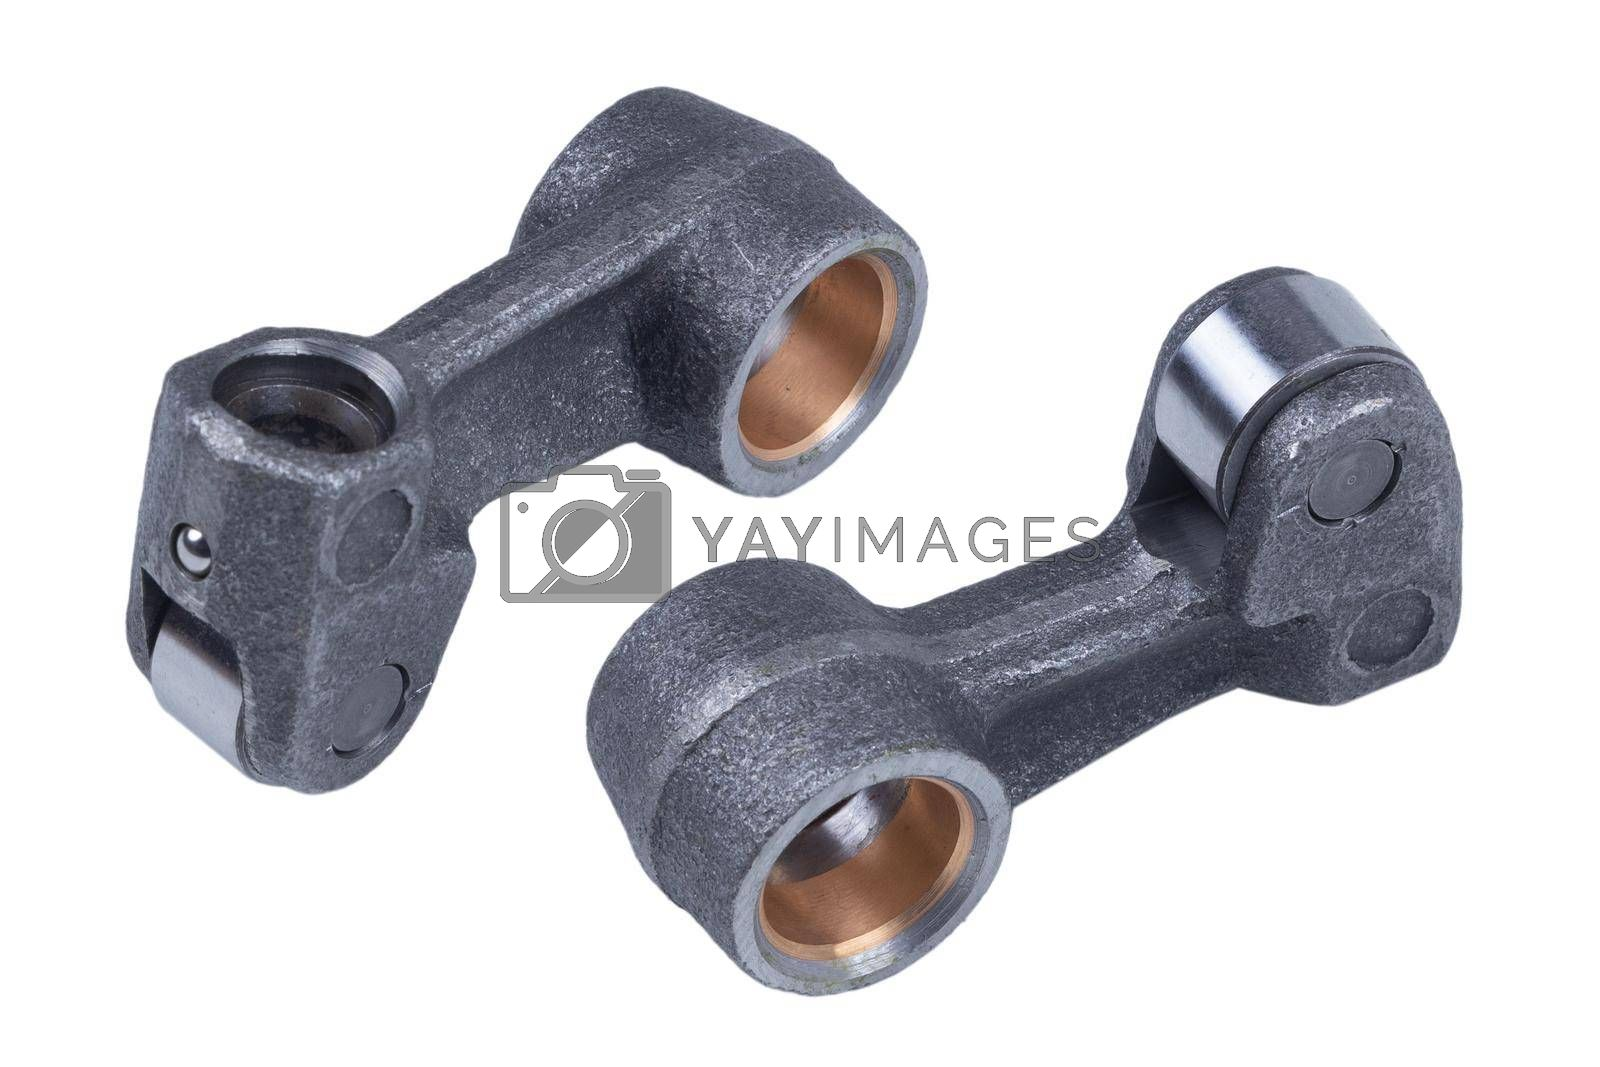 Royalty free image of New modern Car adjustable valve Truck engine Train pusher rocker arm, isolated on white background by forester